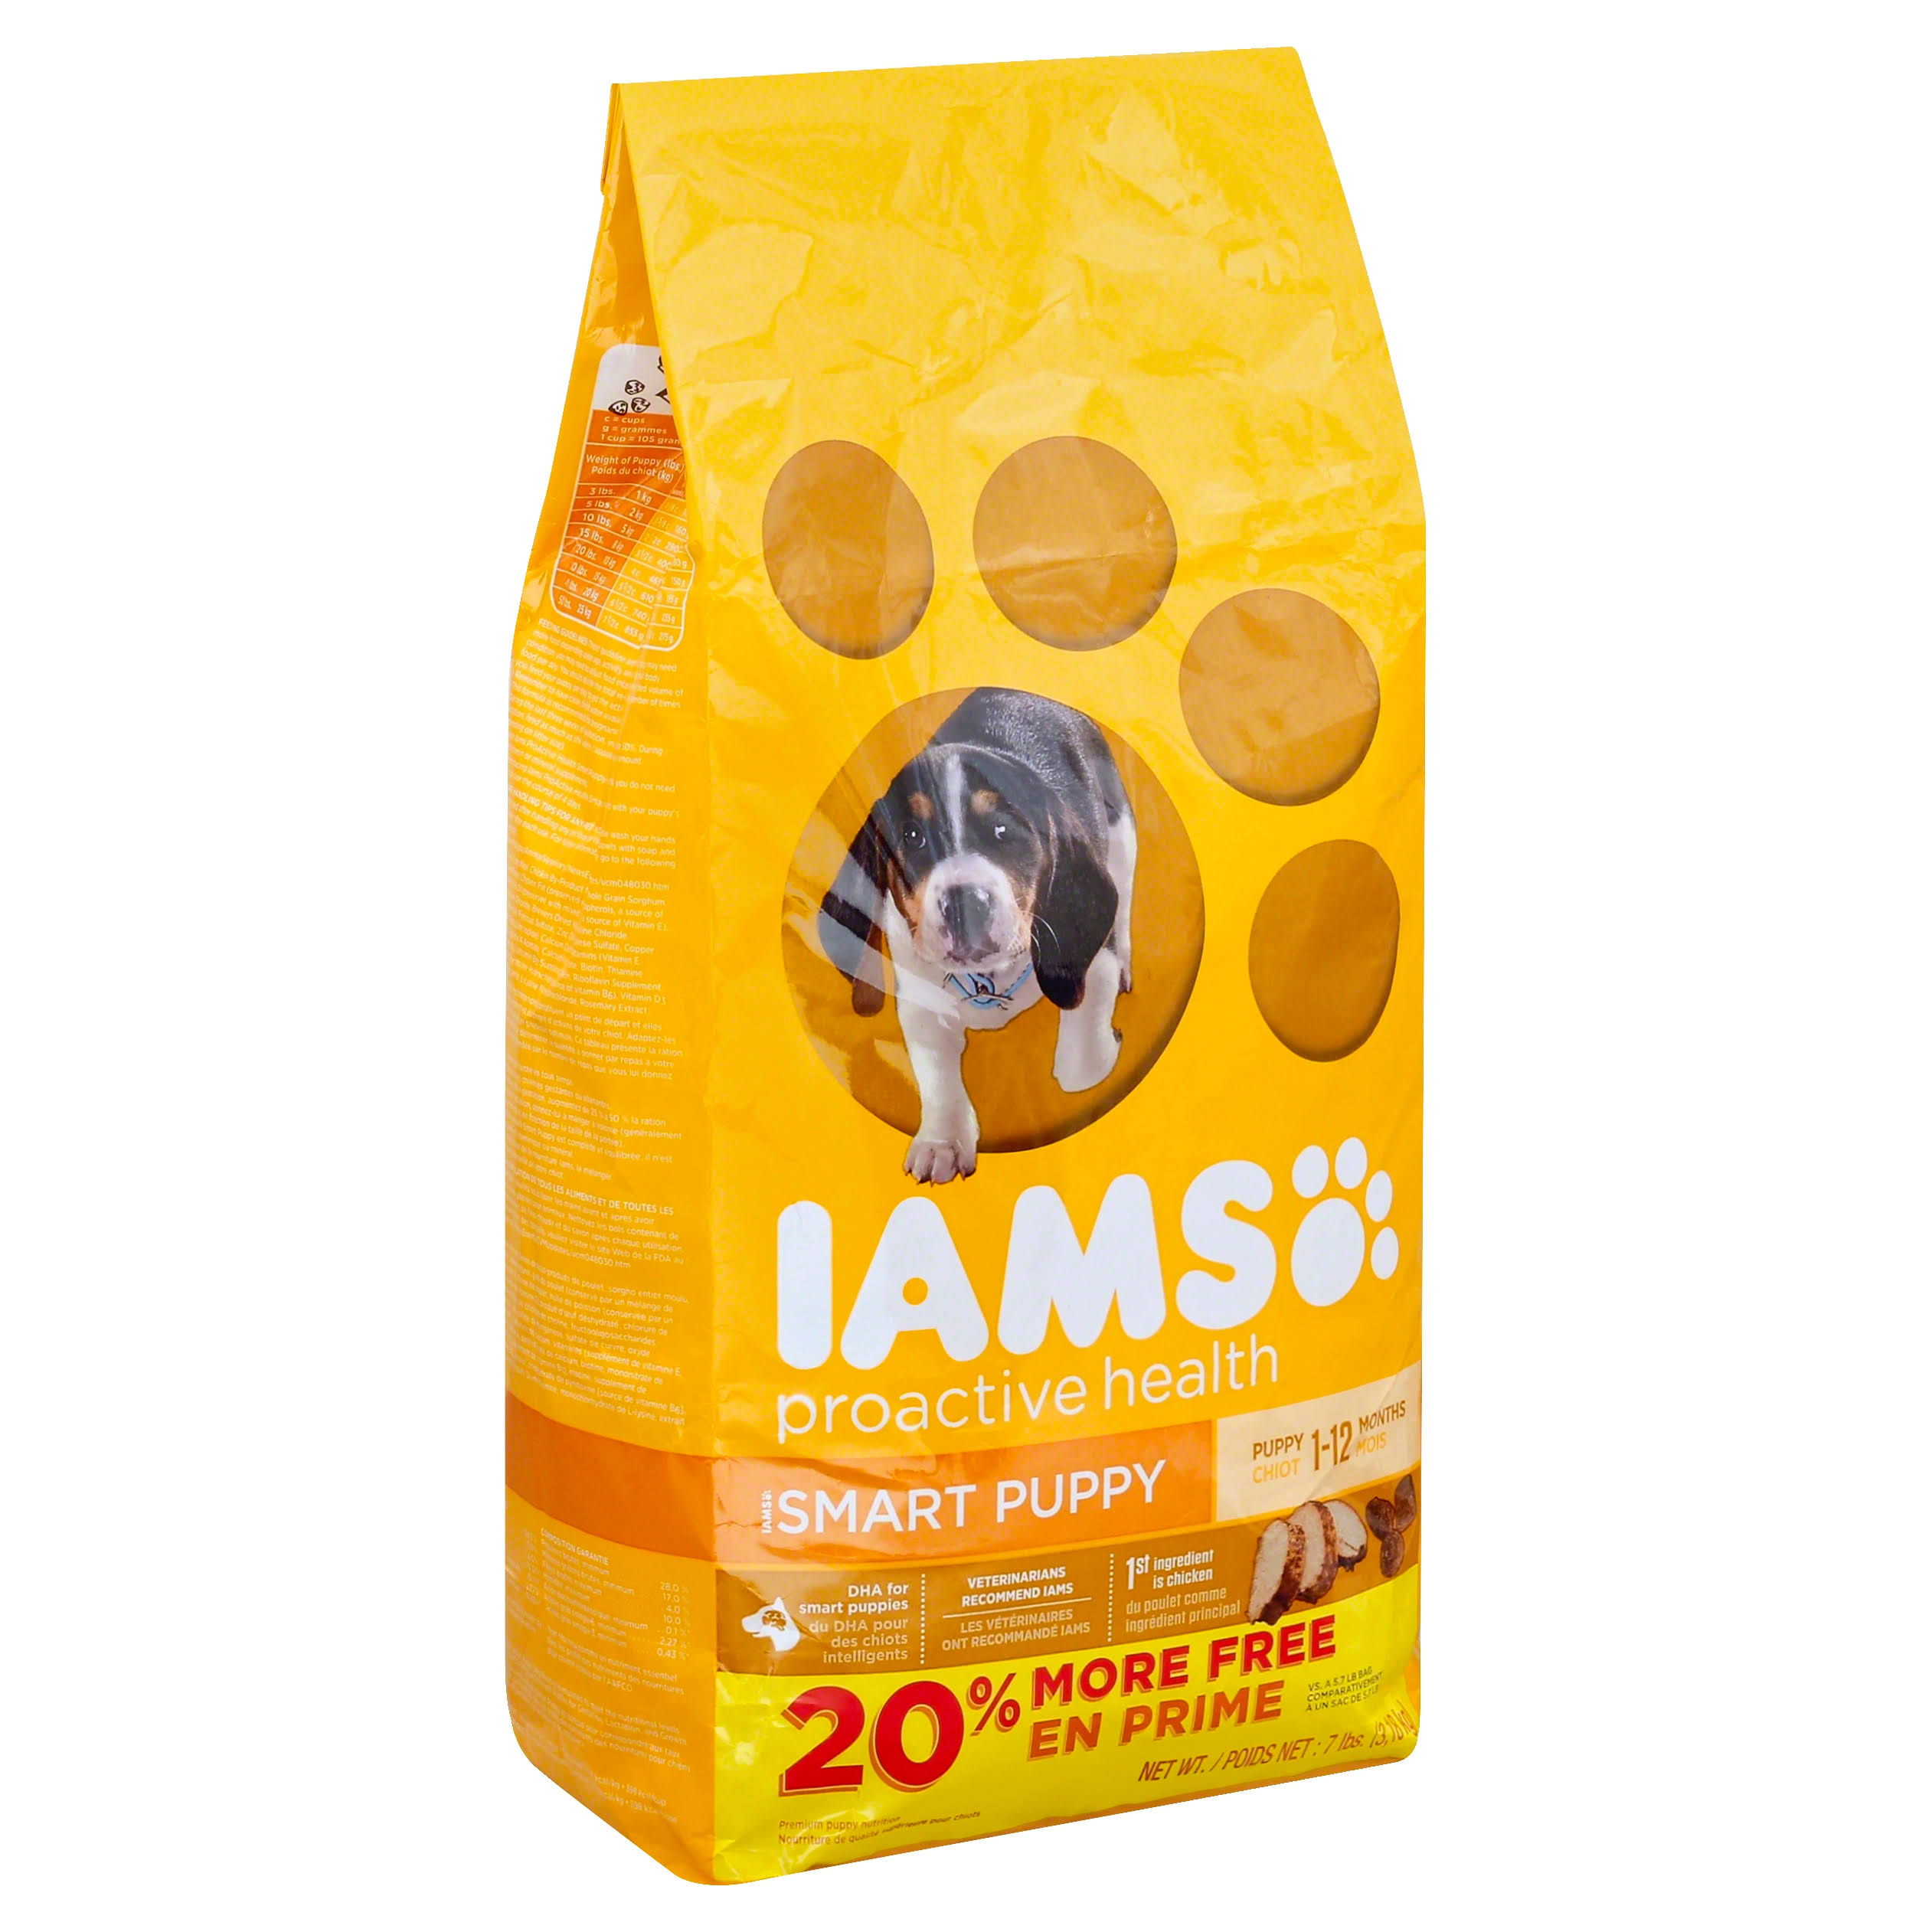 Iams Proactive Health Puppy Dry Dog Food - 1-12 Months